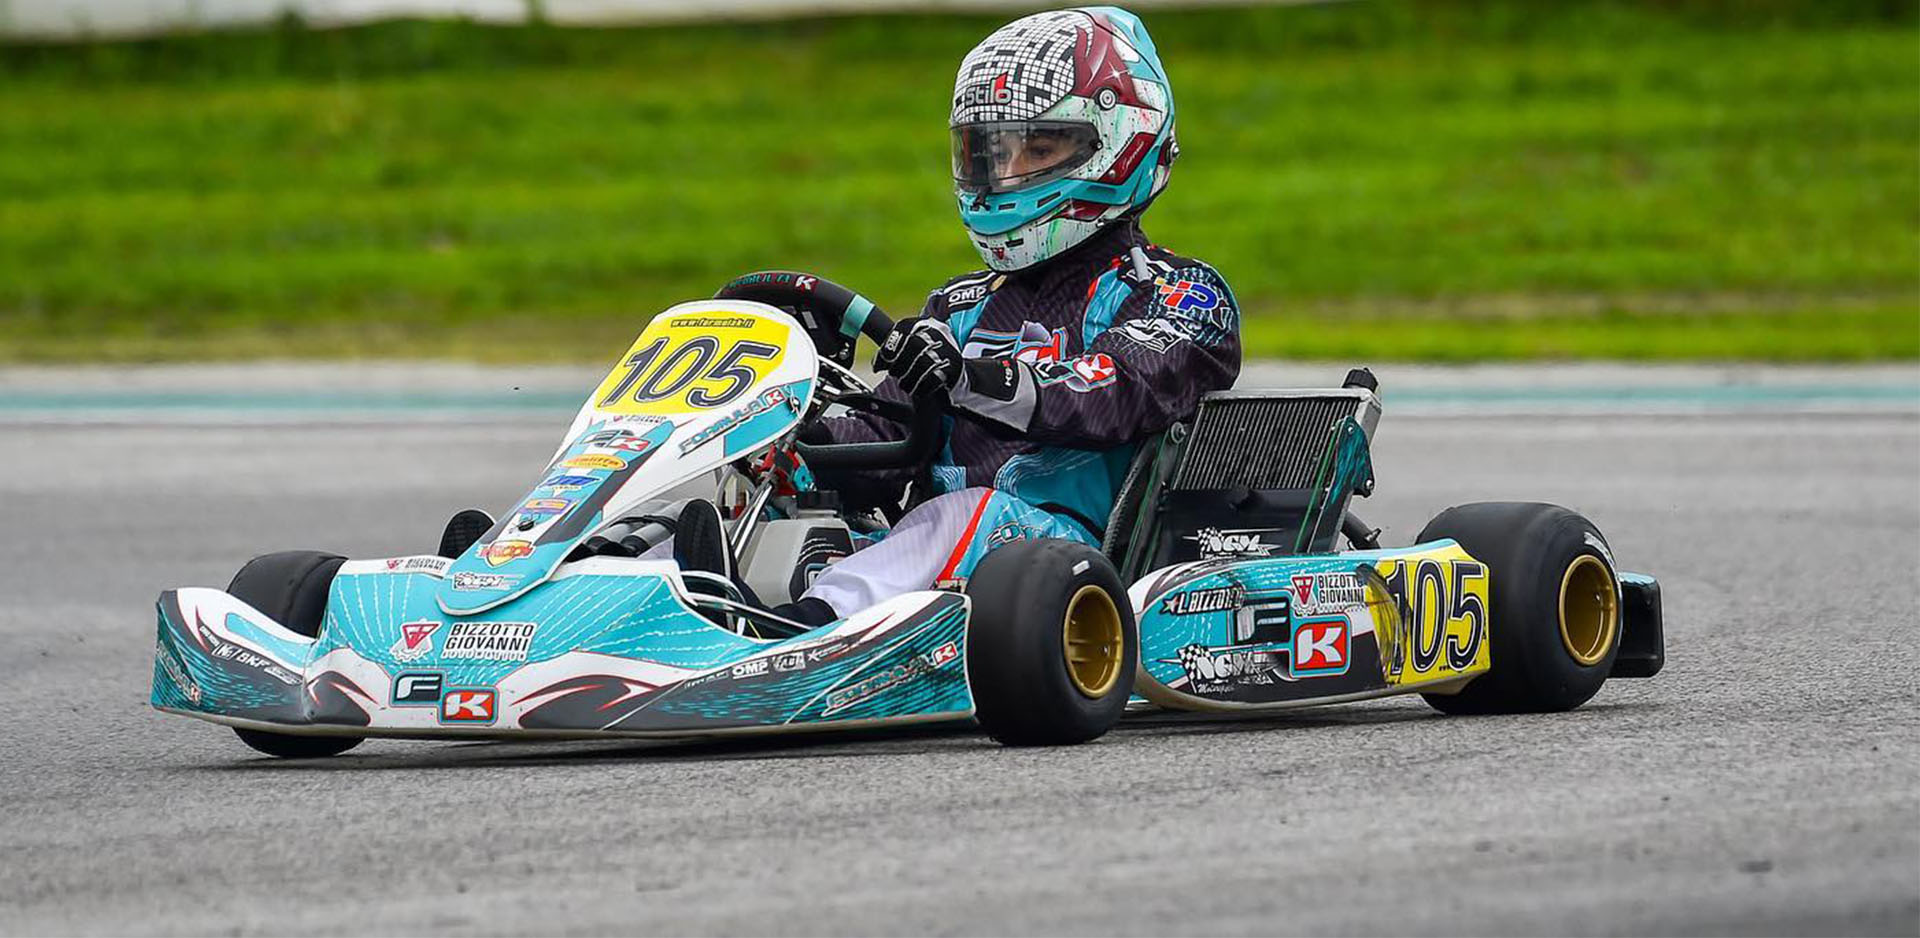 IPK on the podium of the WSK Final Cup